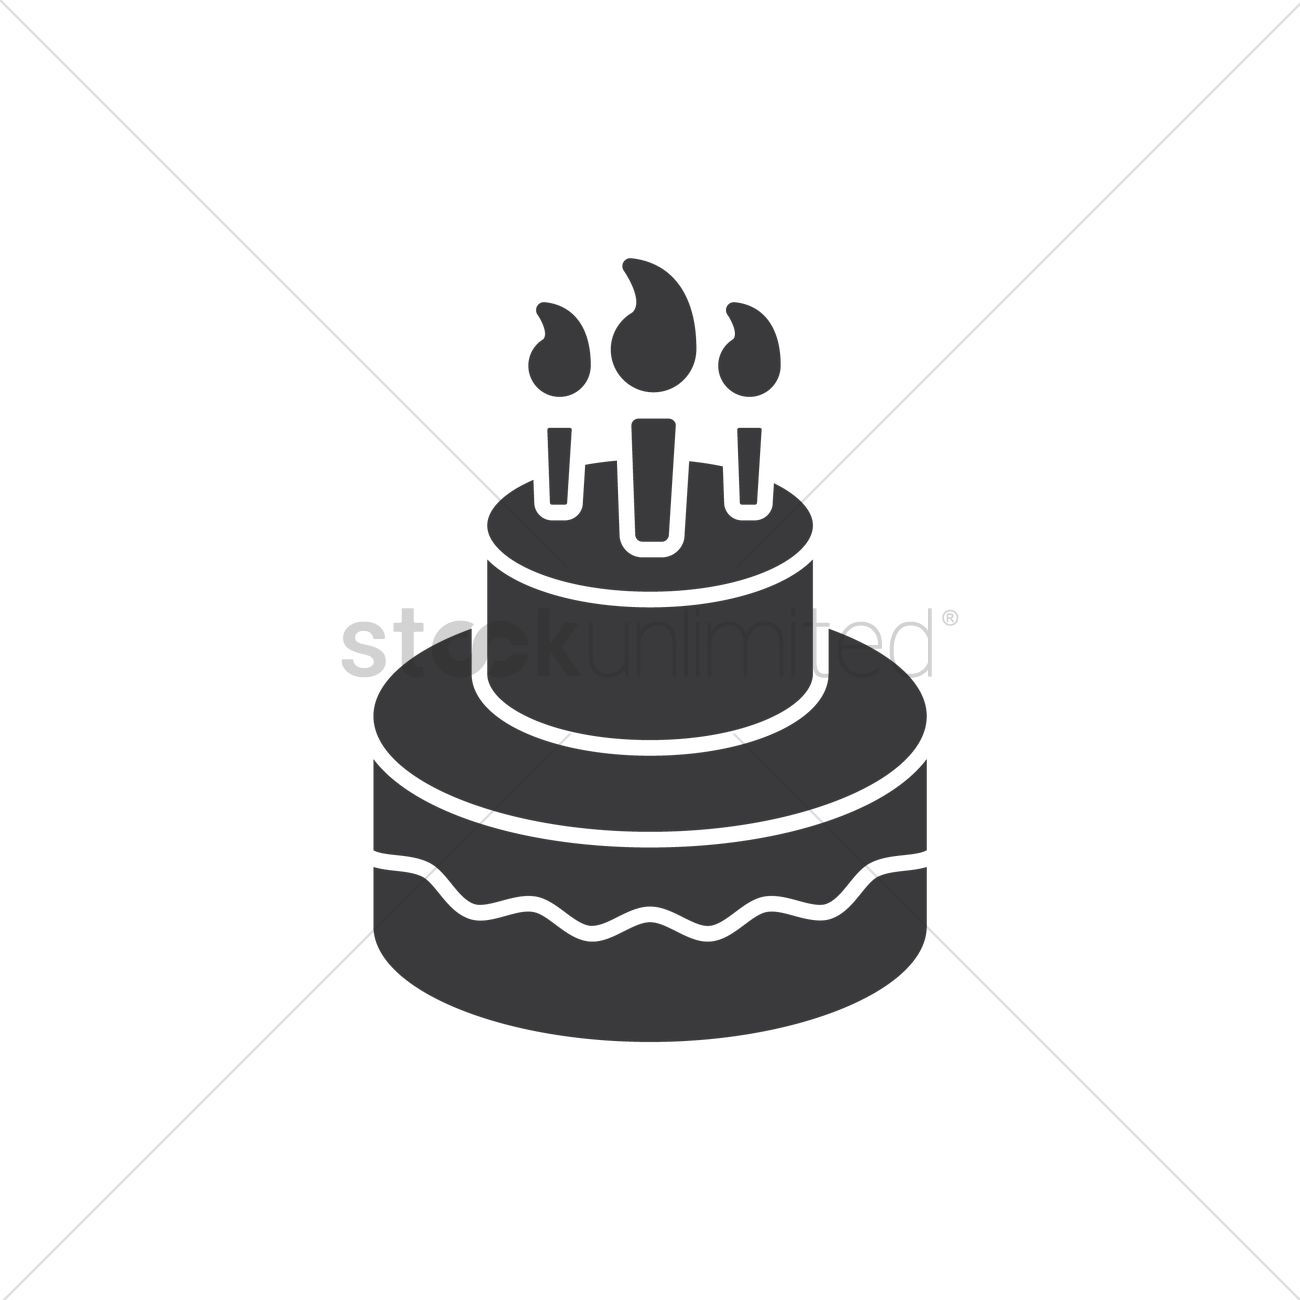 Best ideas about Birthday Cake Vector . Save or Pin Birthday cake Vector Image Now.